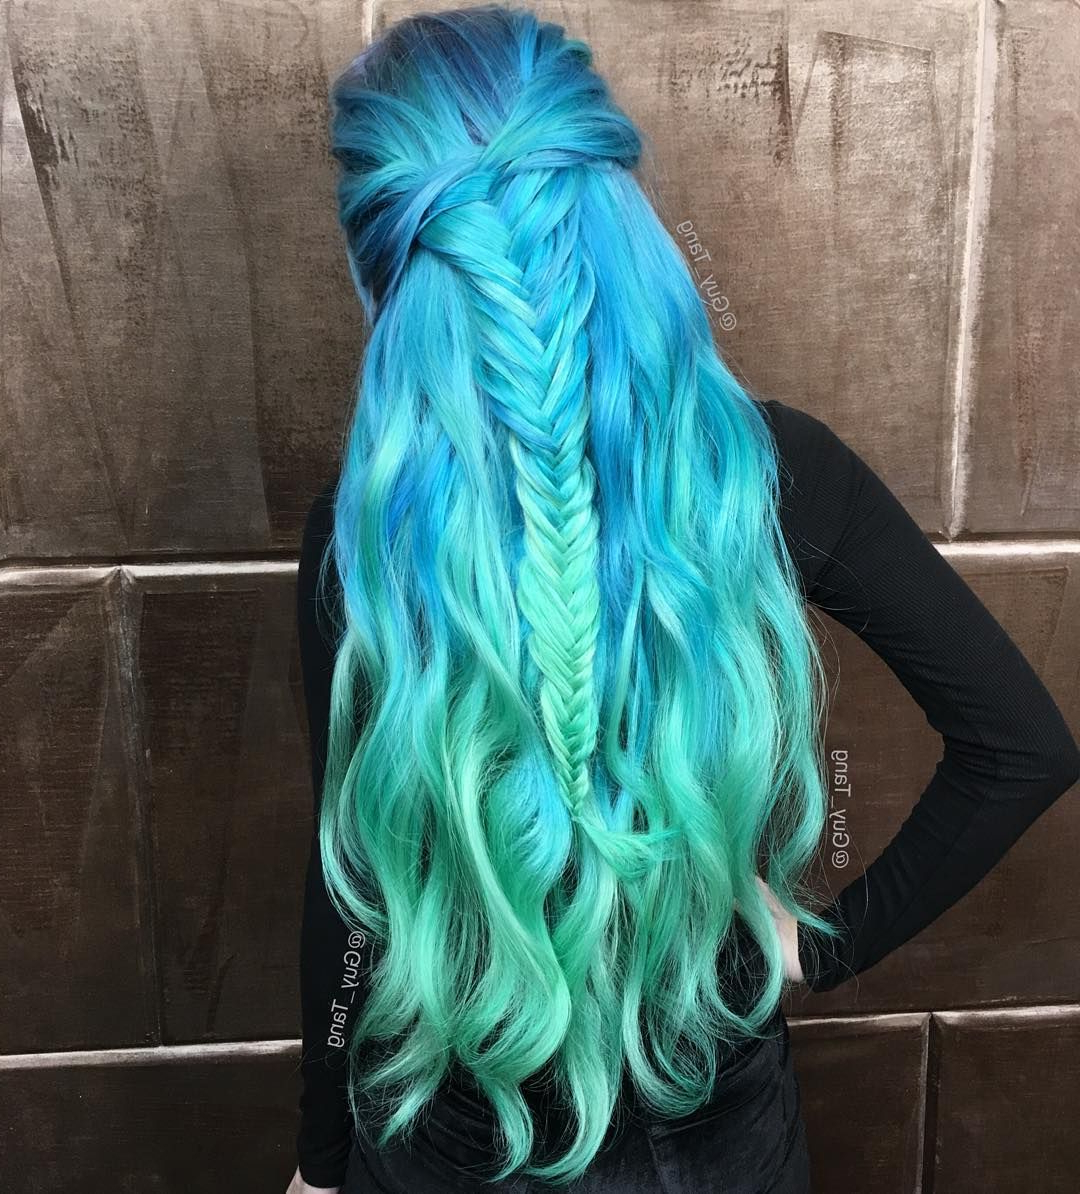 Wavy Mermaid Teal Blue & Aquamarine Green Hair With Fishtail With Latest Cotton Candy Colors Blend Mermaid Braid Hairstyles (View 16 of 20)